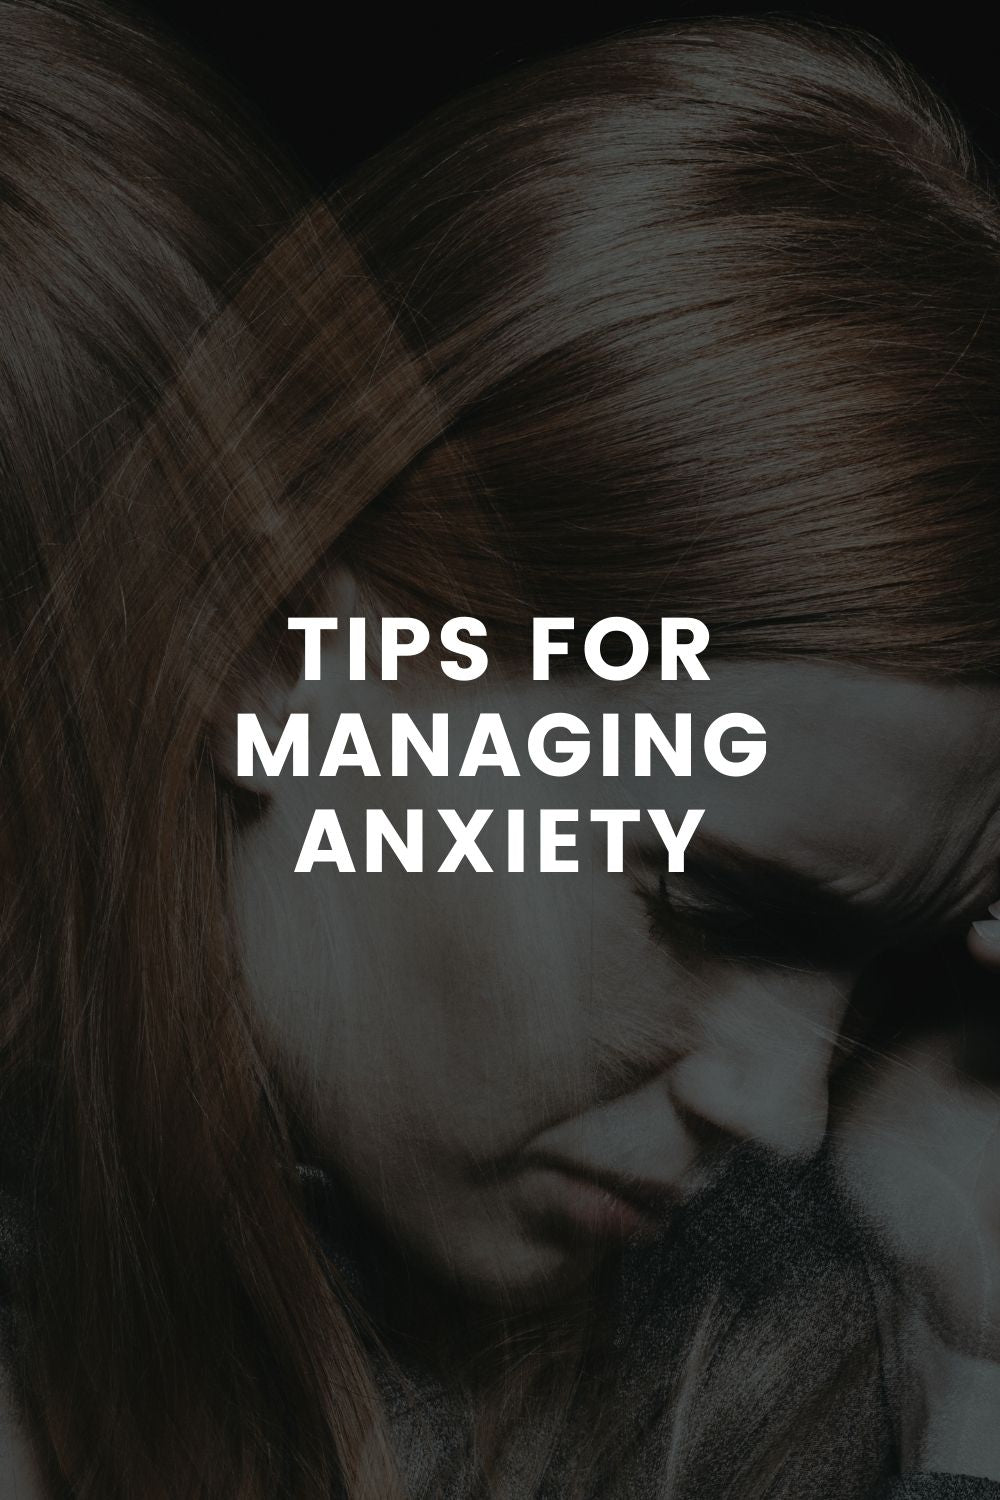 Tips for Managing Anxiety